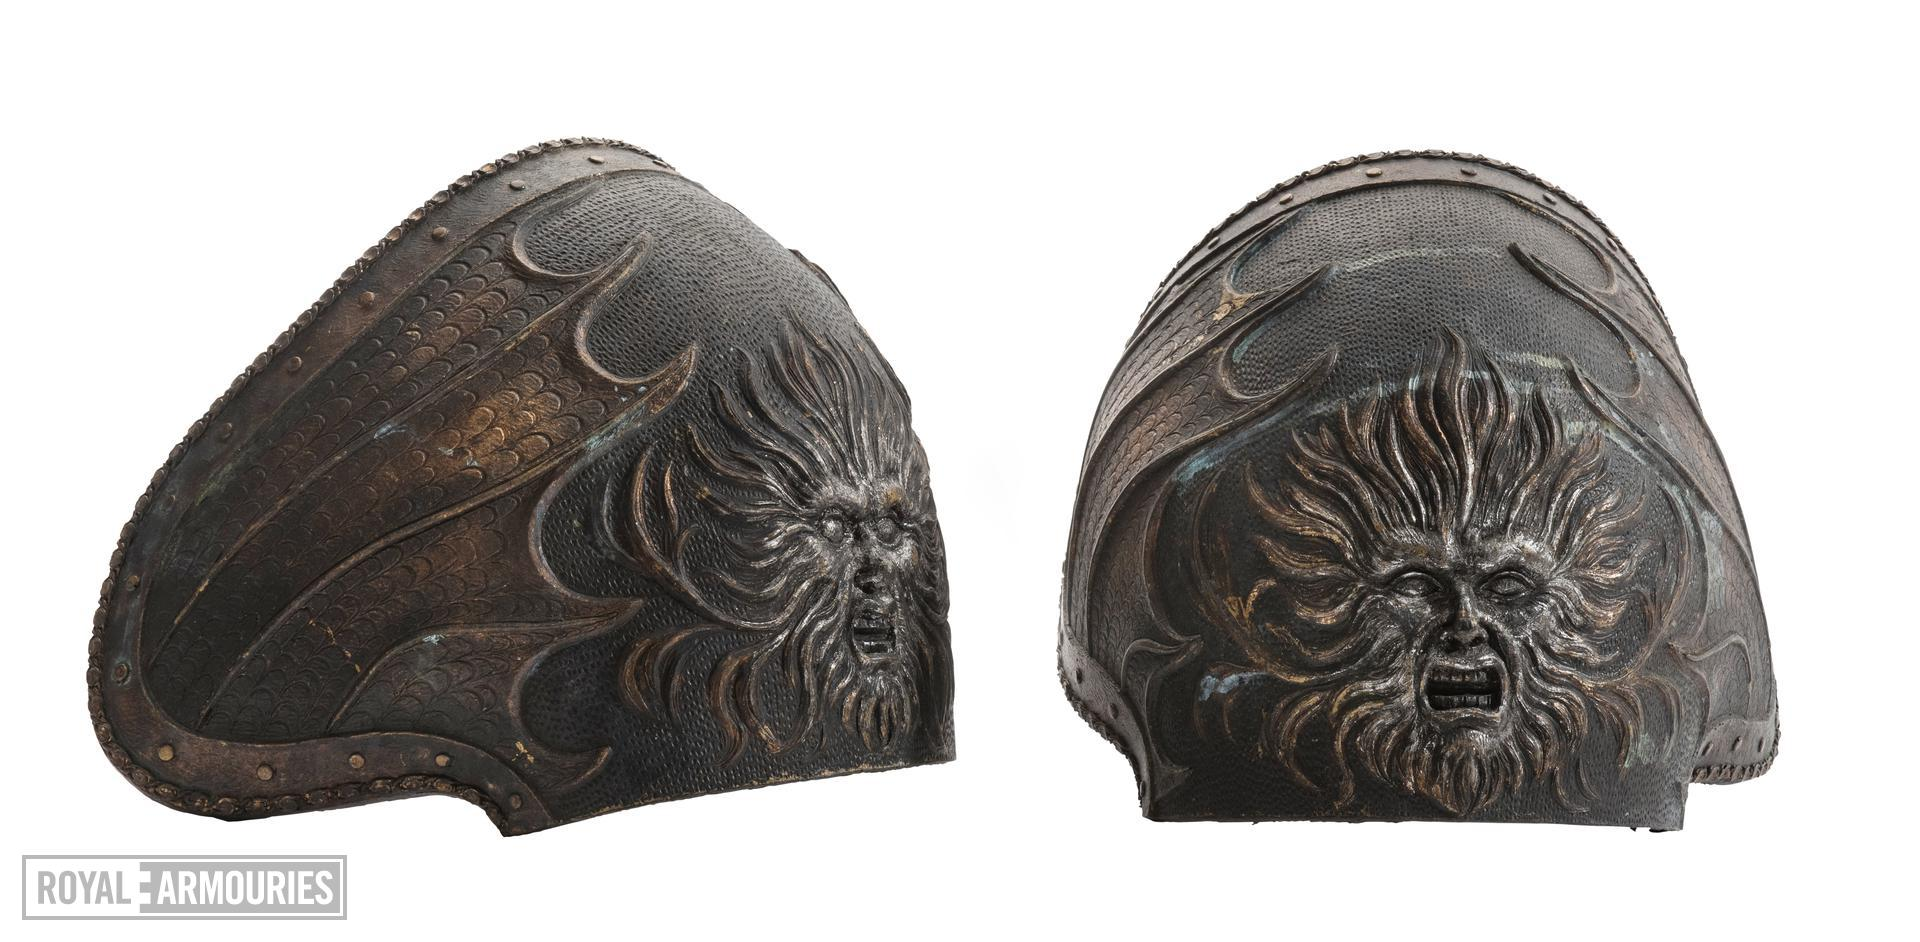 Hero armour of Necromonger Lord Marshal played by Colm Feore from the 2004 cult movie 'The Chronicles of Riddick' starring Vin Diesel. Ornately decorated and highly detailed. Bronze and black in appearance but made from hard rubber urethane and aluminium. 2003 (II.409)